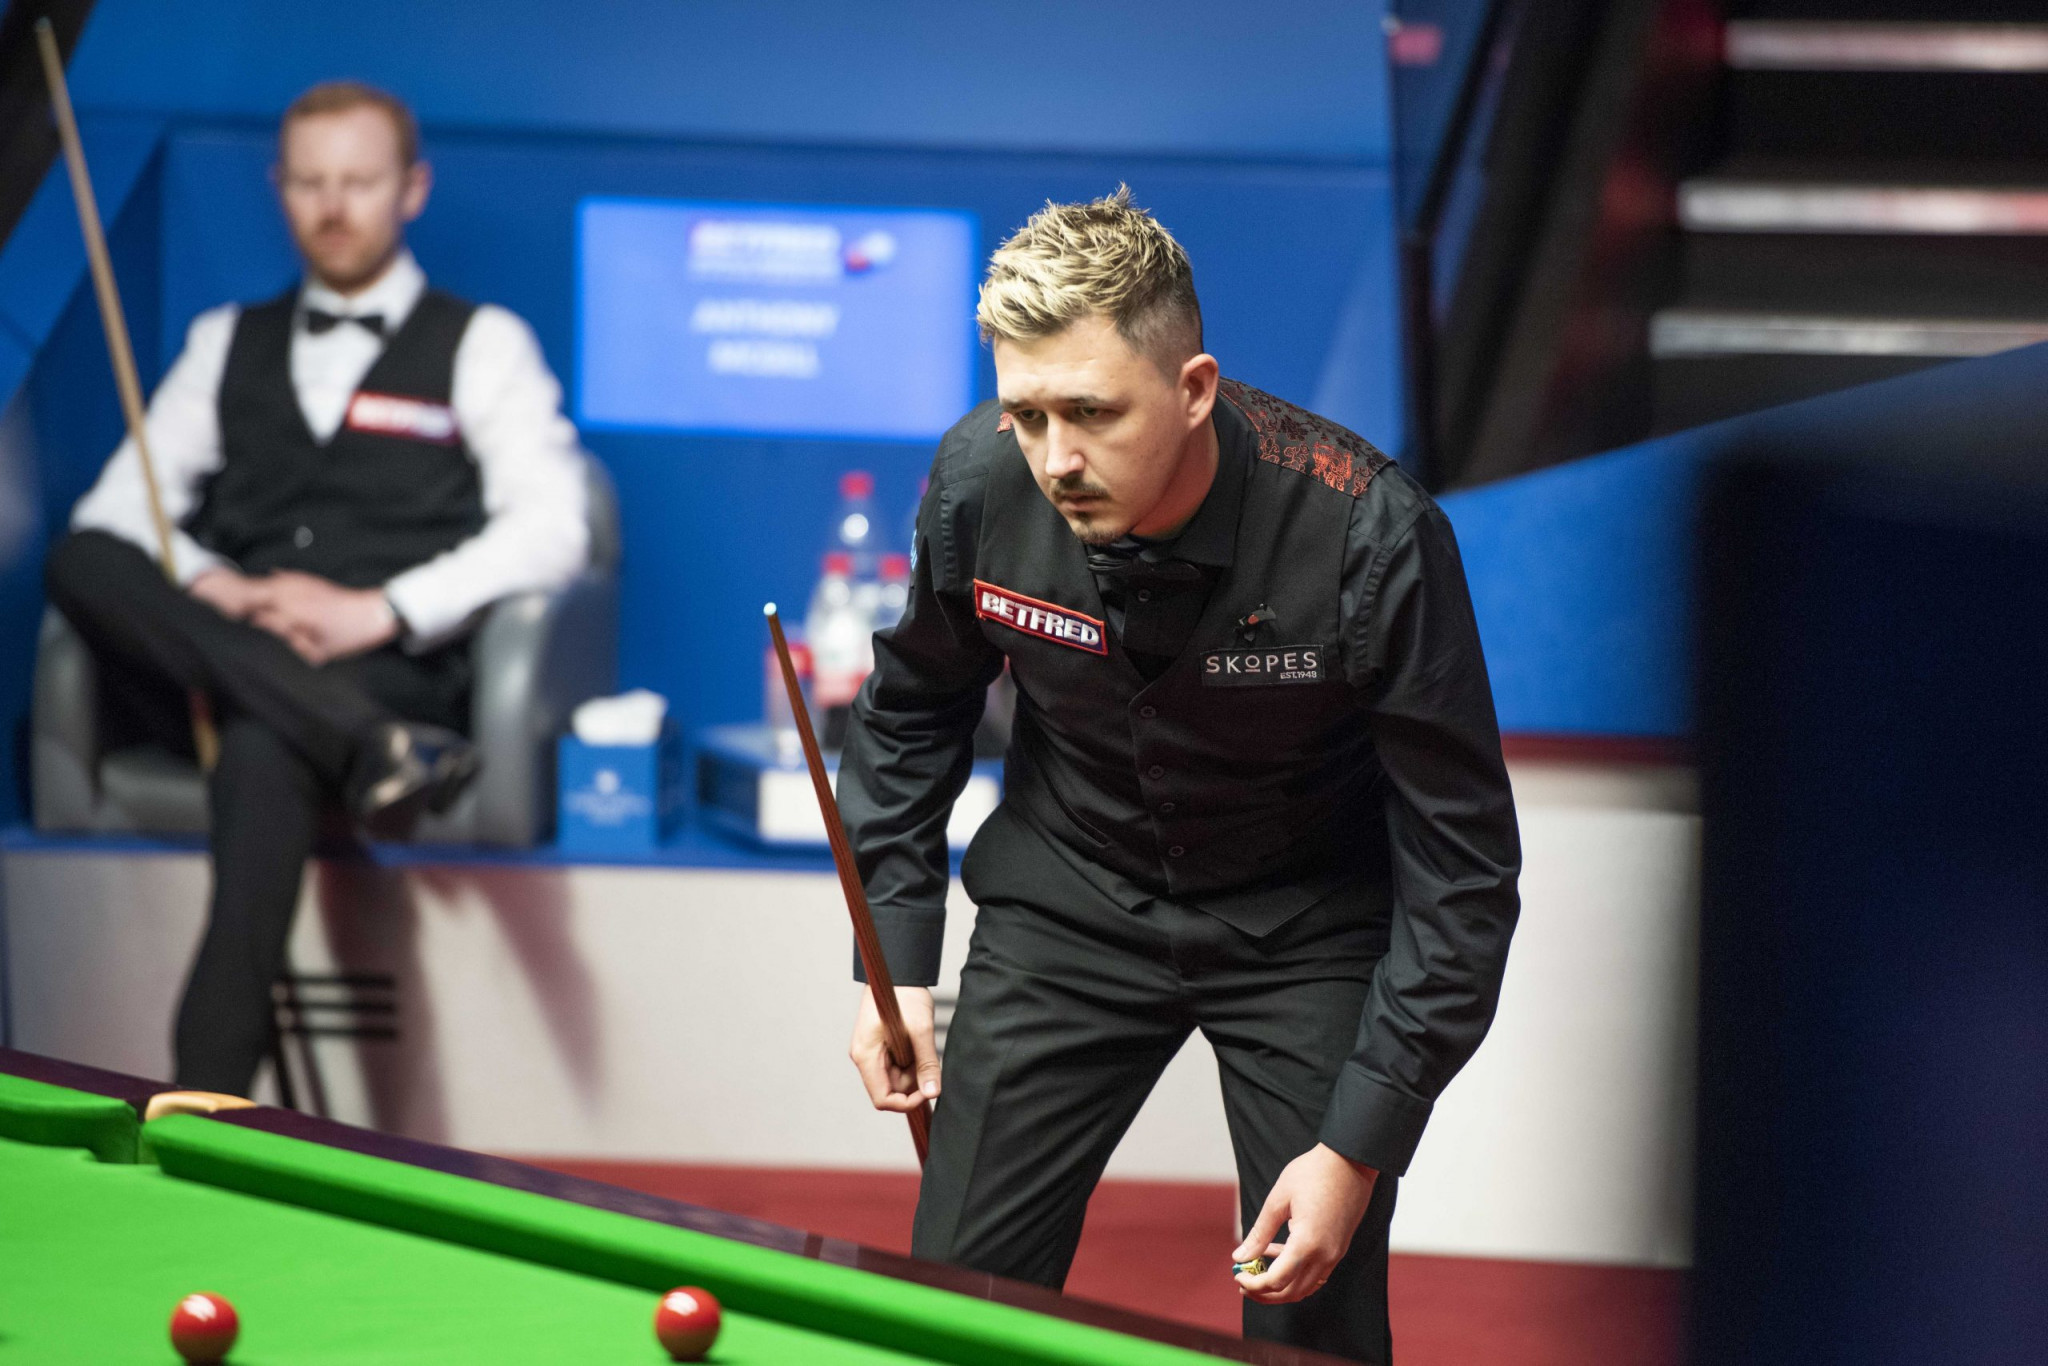 Spectators set to be allowed to watch final of World Snooker Championship